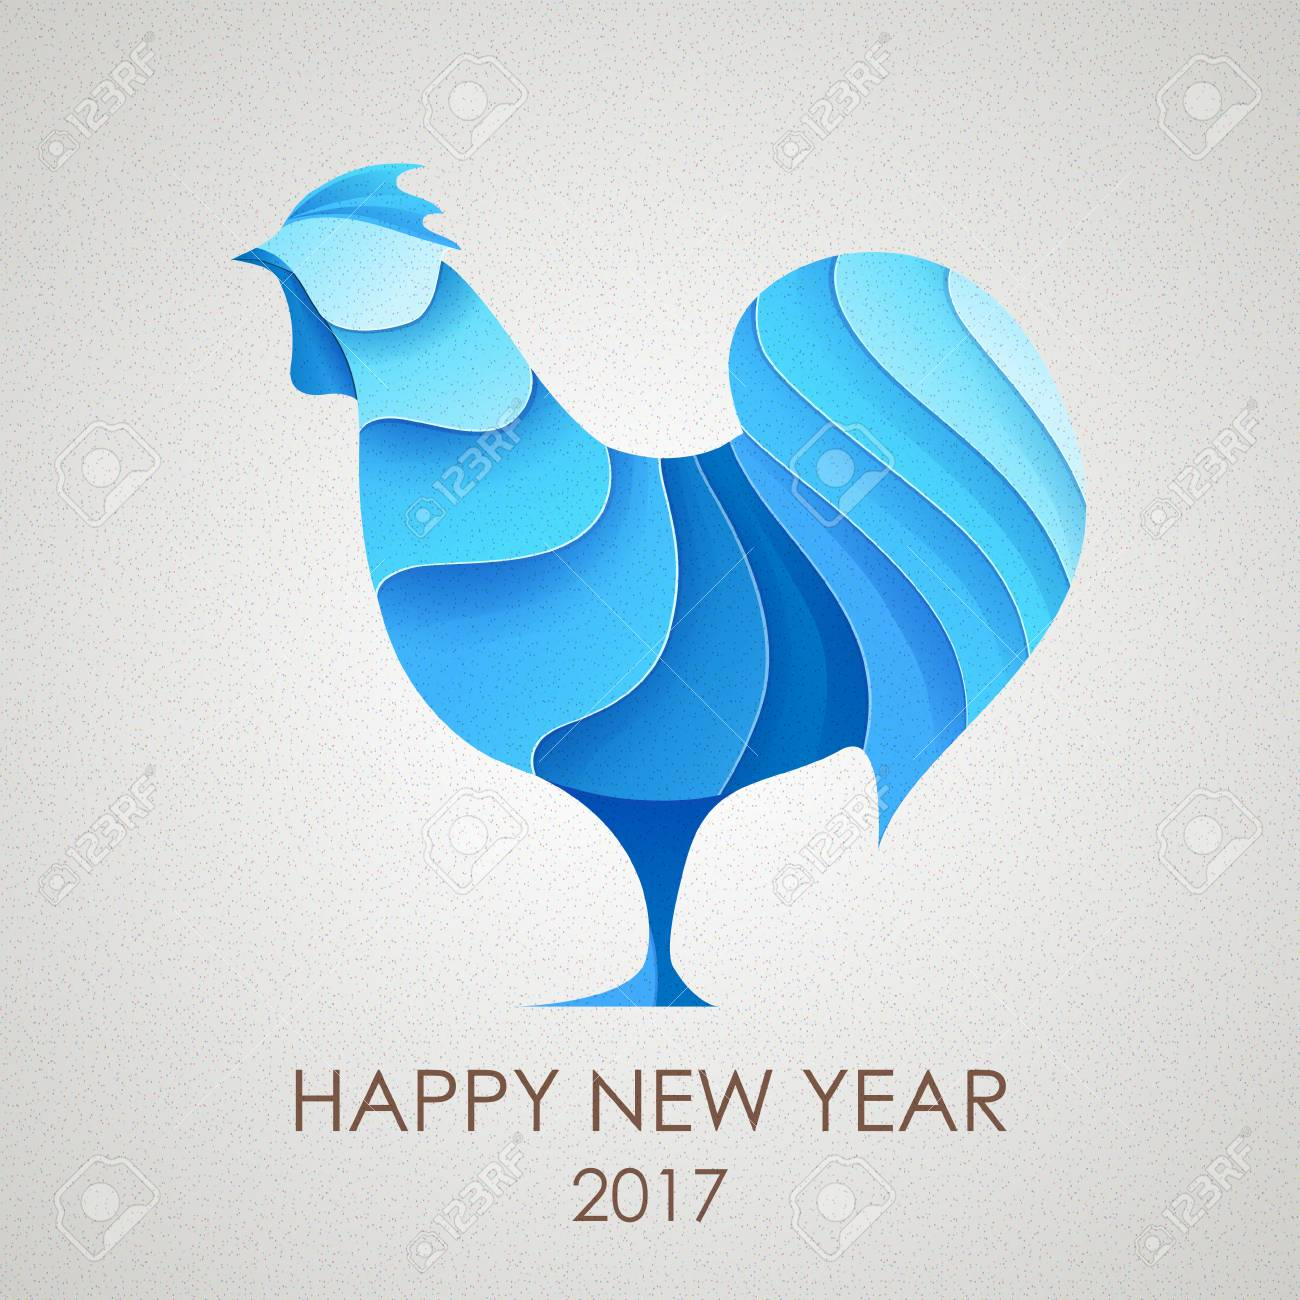 3d origami silhouette of rooster or chicken happy new year card 2017 stock vector